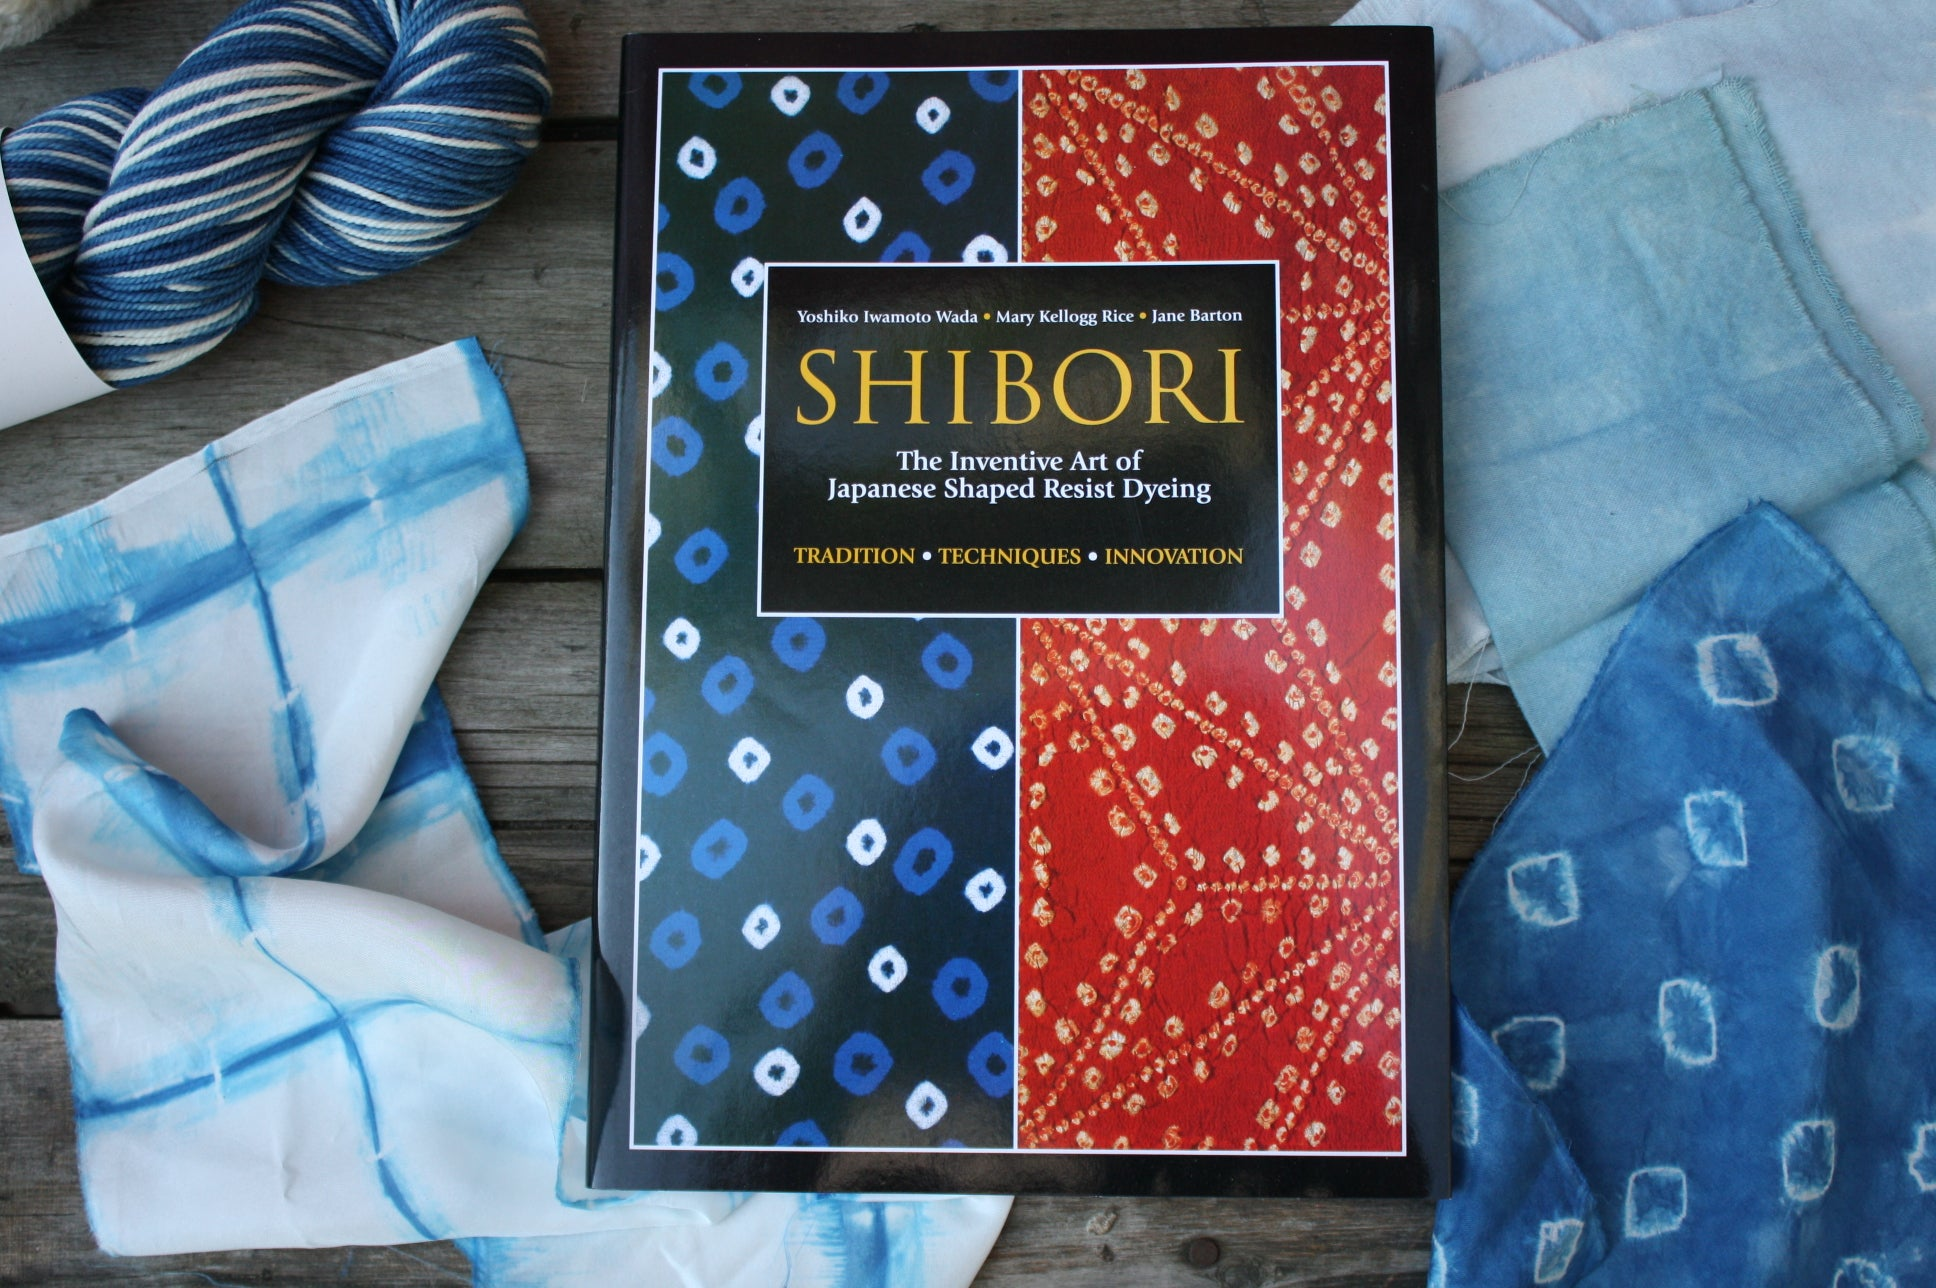 Shibori: The Inventive Art of Japanese Shaped Resist Dyeing